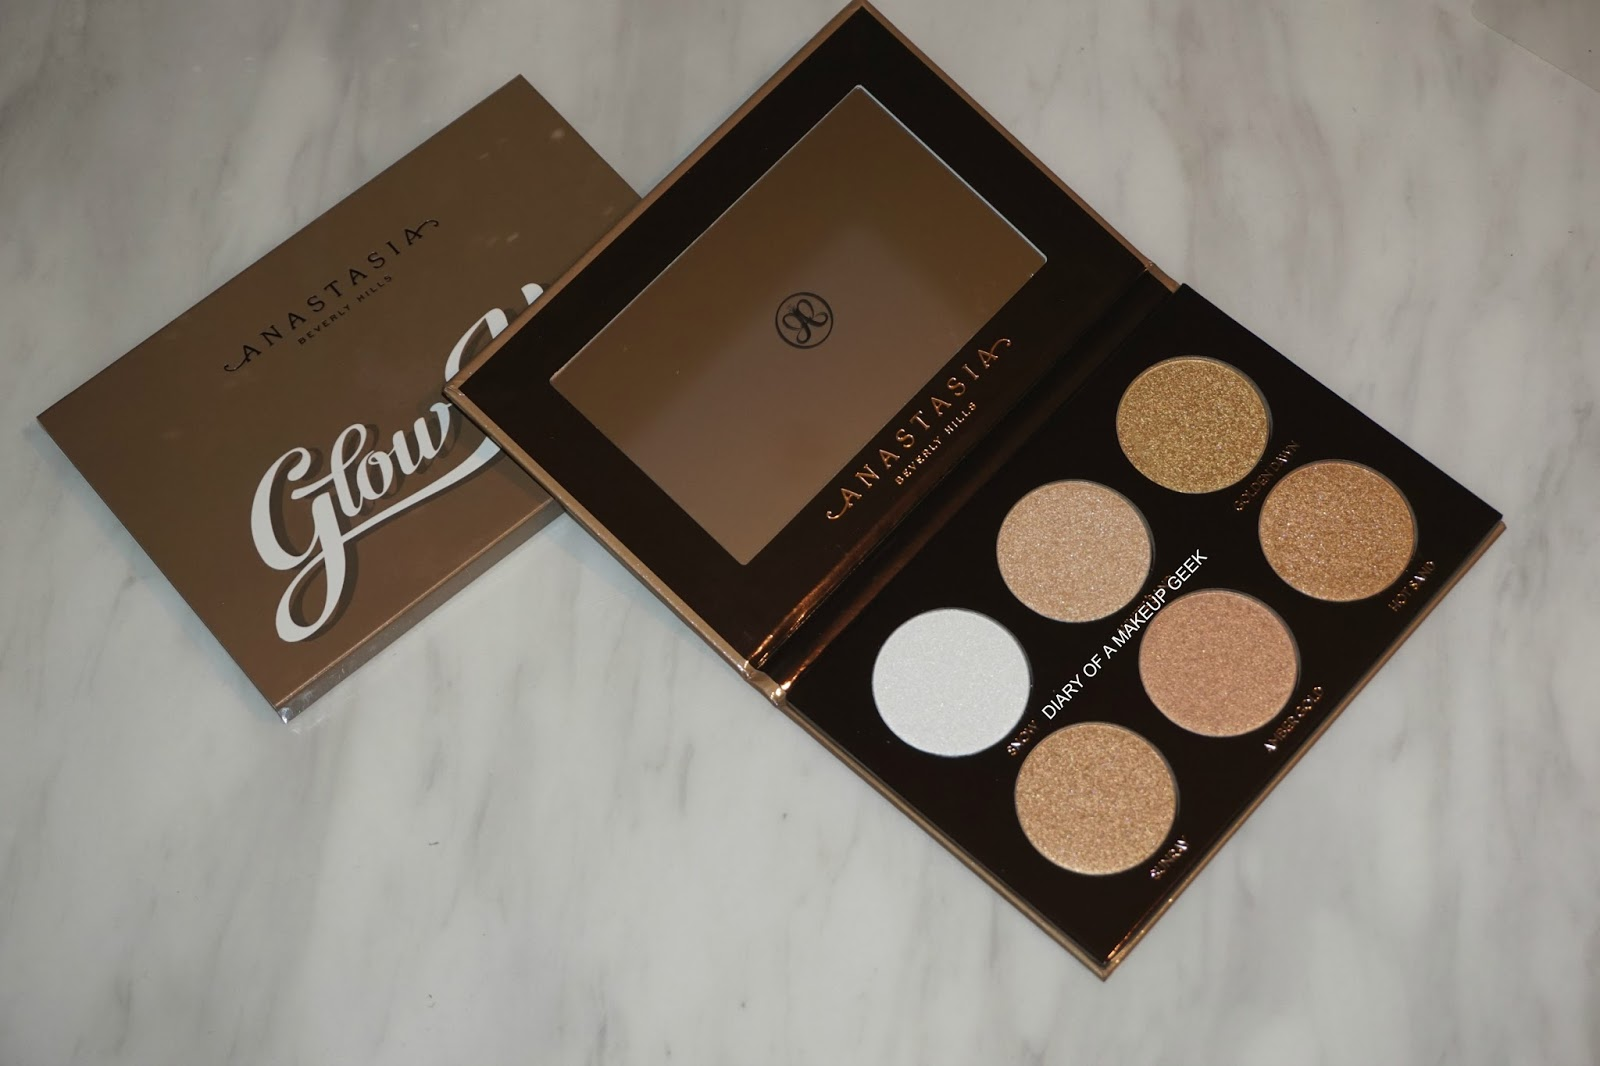 anastasia beverly hills glow kit ultimate glow. ultimate glow kit | review/swatches. two weeks ago was the launch of anastasia beverly hills holiday collection 2016 which consisted one